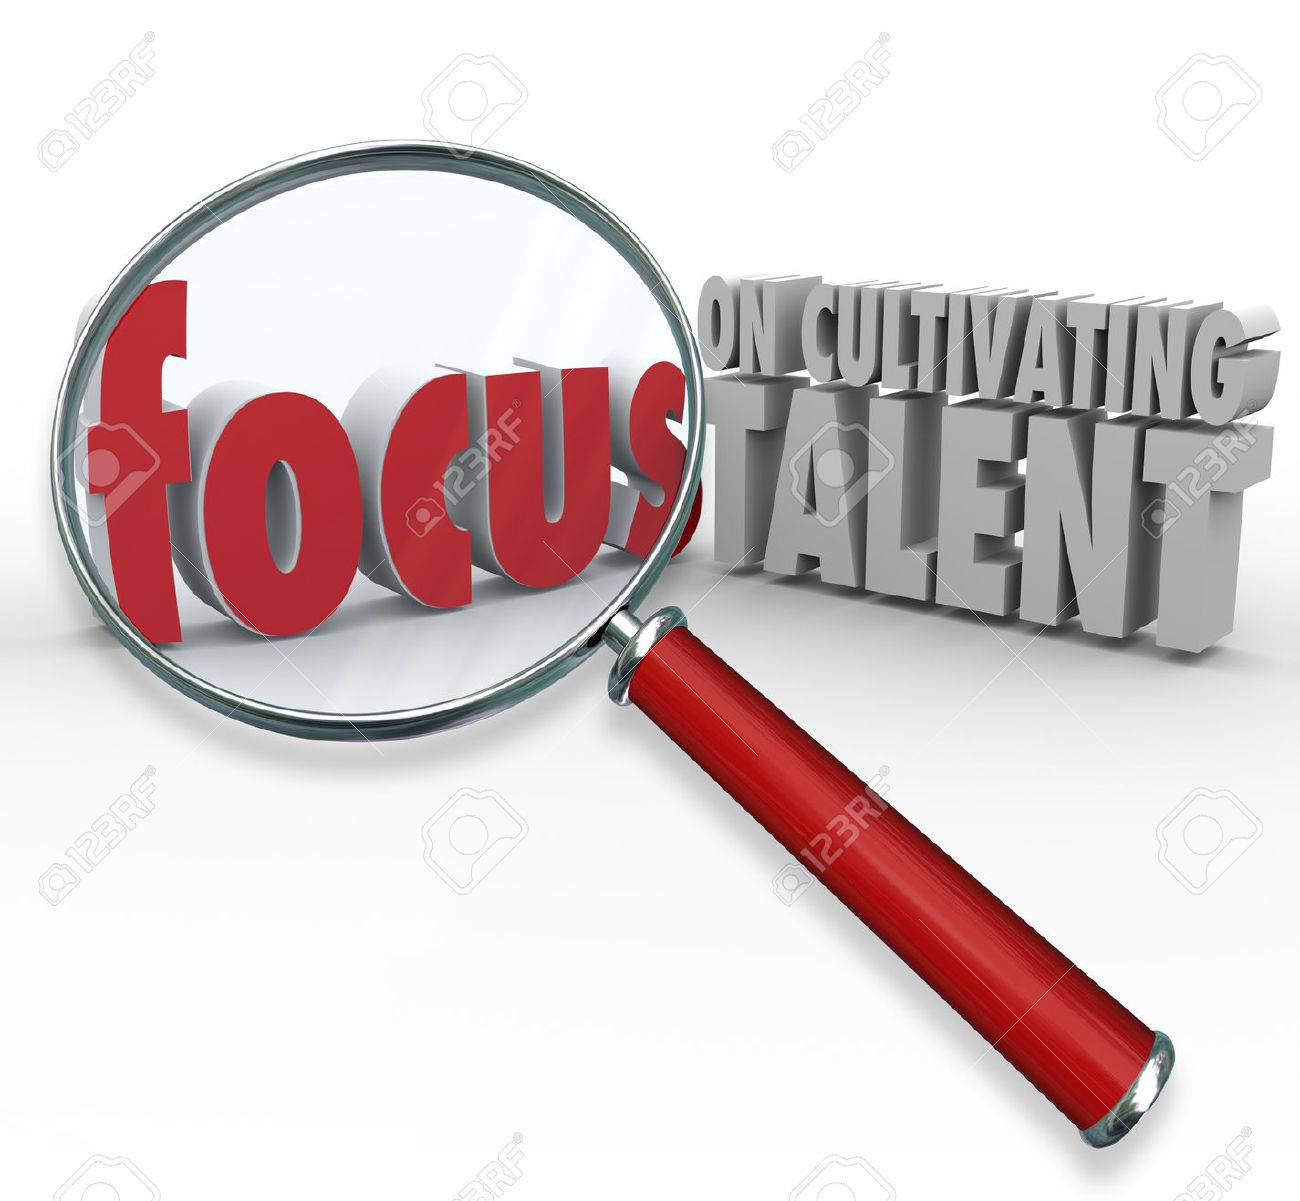 train skills stock photos images royalty train skills images train skills focus on cultivating talent 3d words under a magnifying glass to illustrate finding